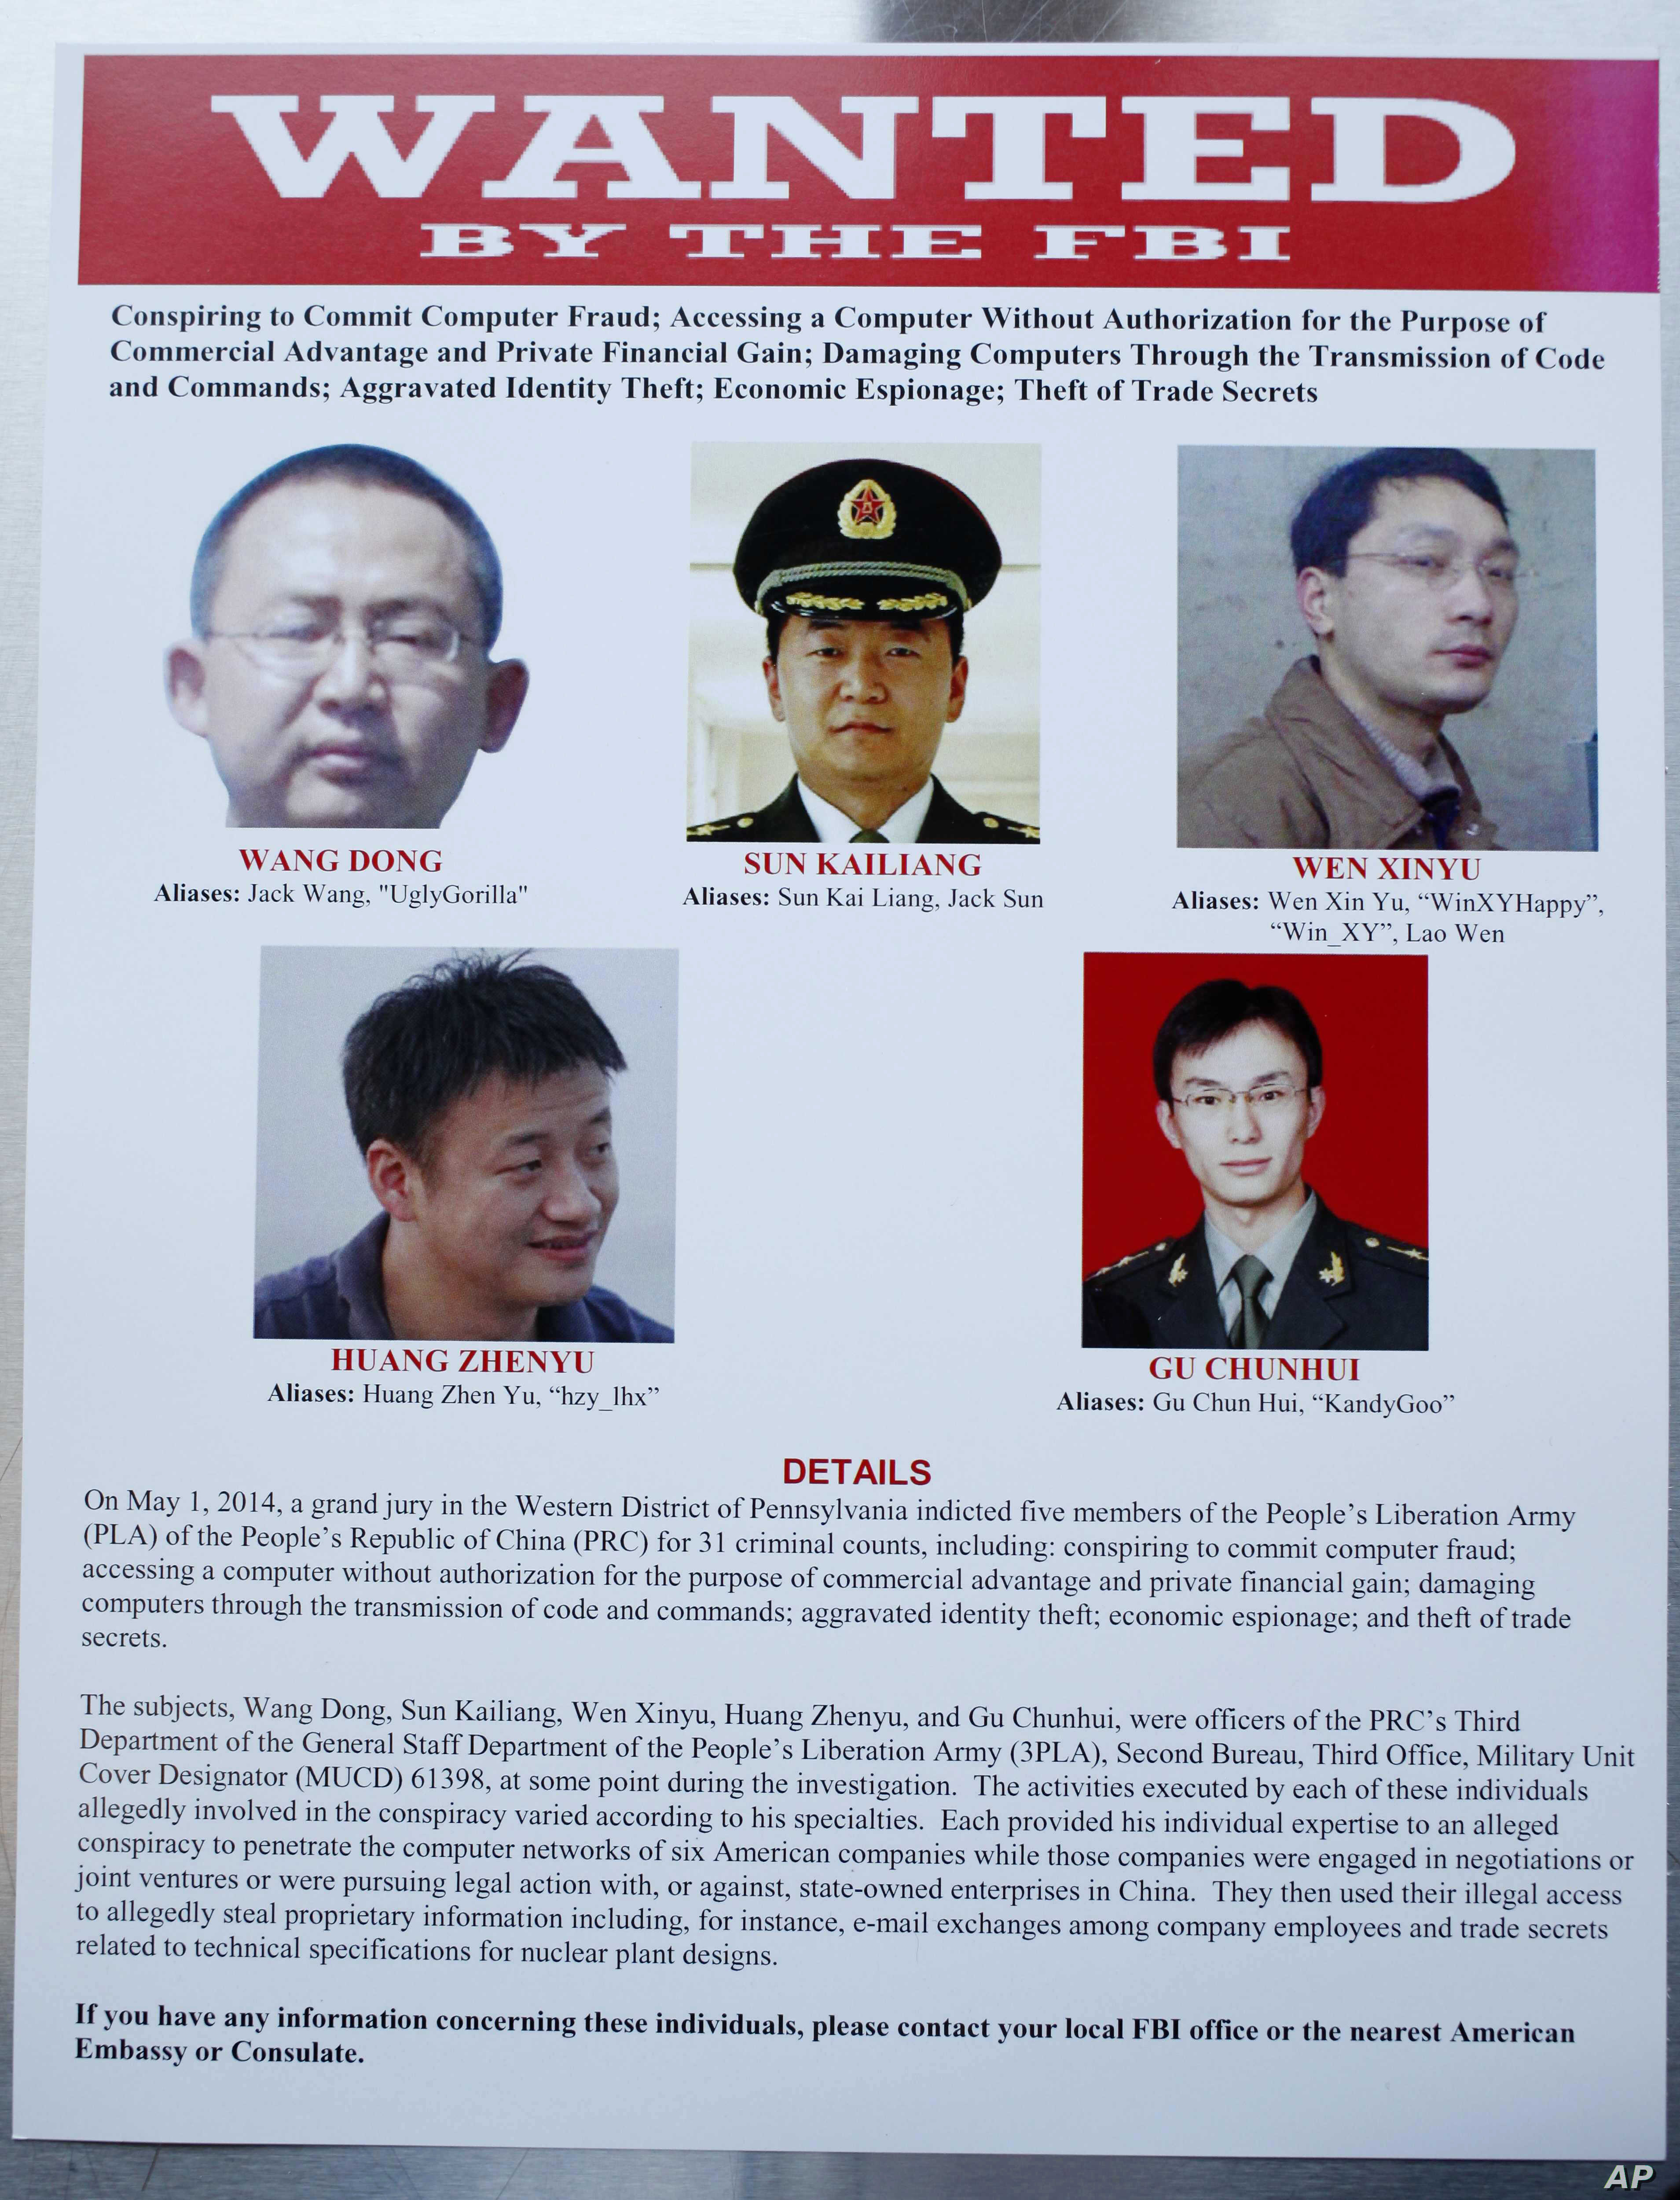 FILE: A poster of five Chinese military officers accused of stealing U.S. companies' trade secrets is displayed at the Justice Department in Washington, D.C., on May 19, 2014.